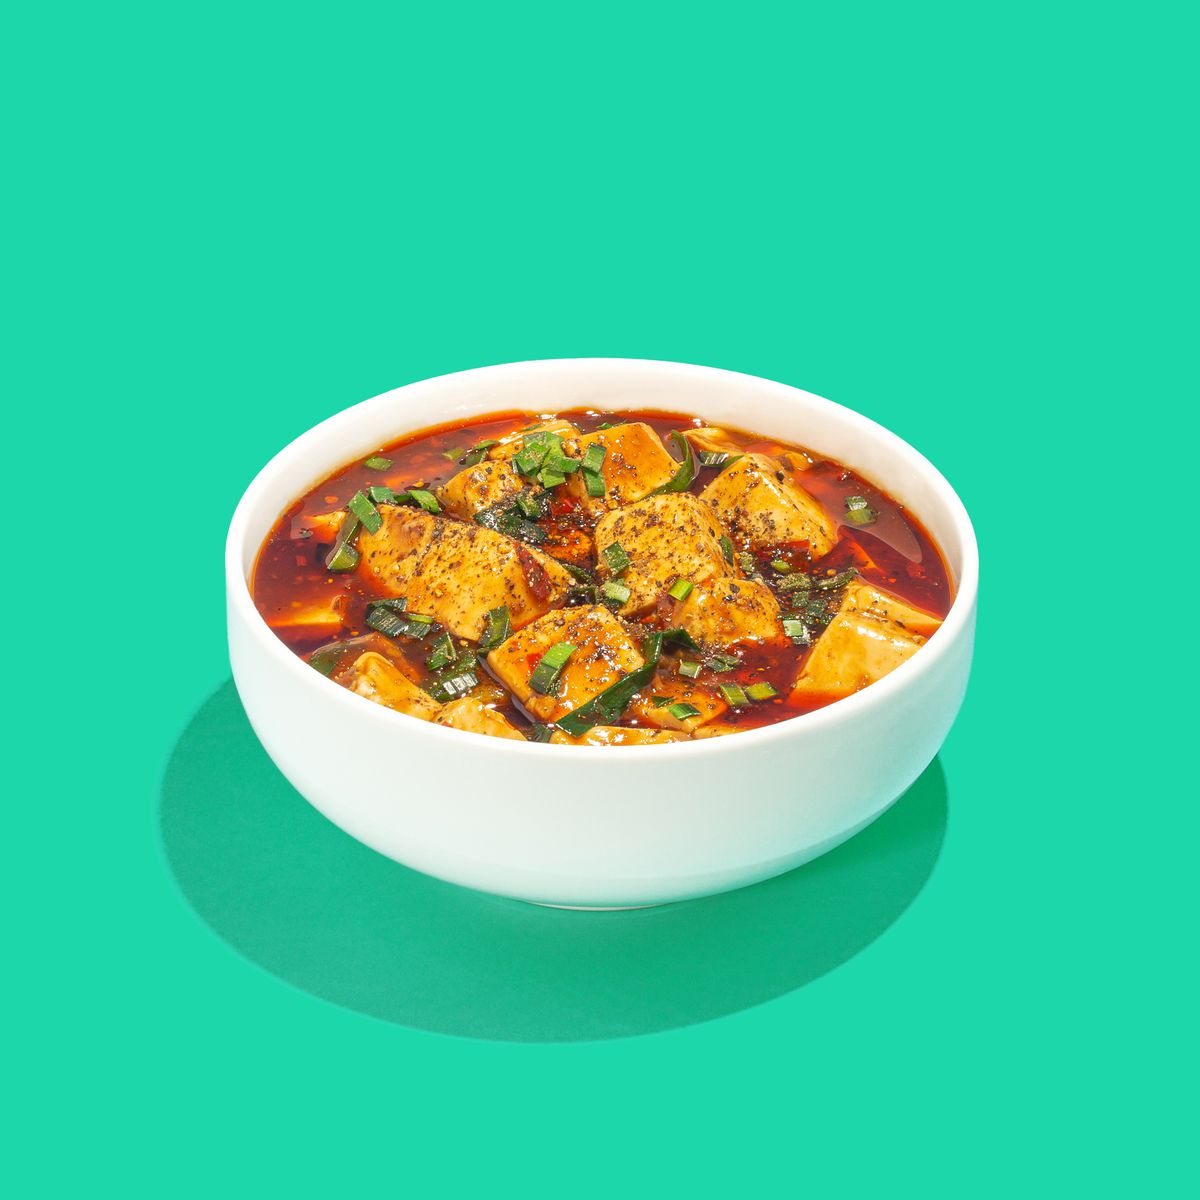 A white bowl against a green background with a reddish sauce and pieces of tofu in it